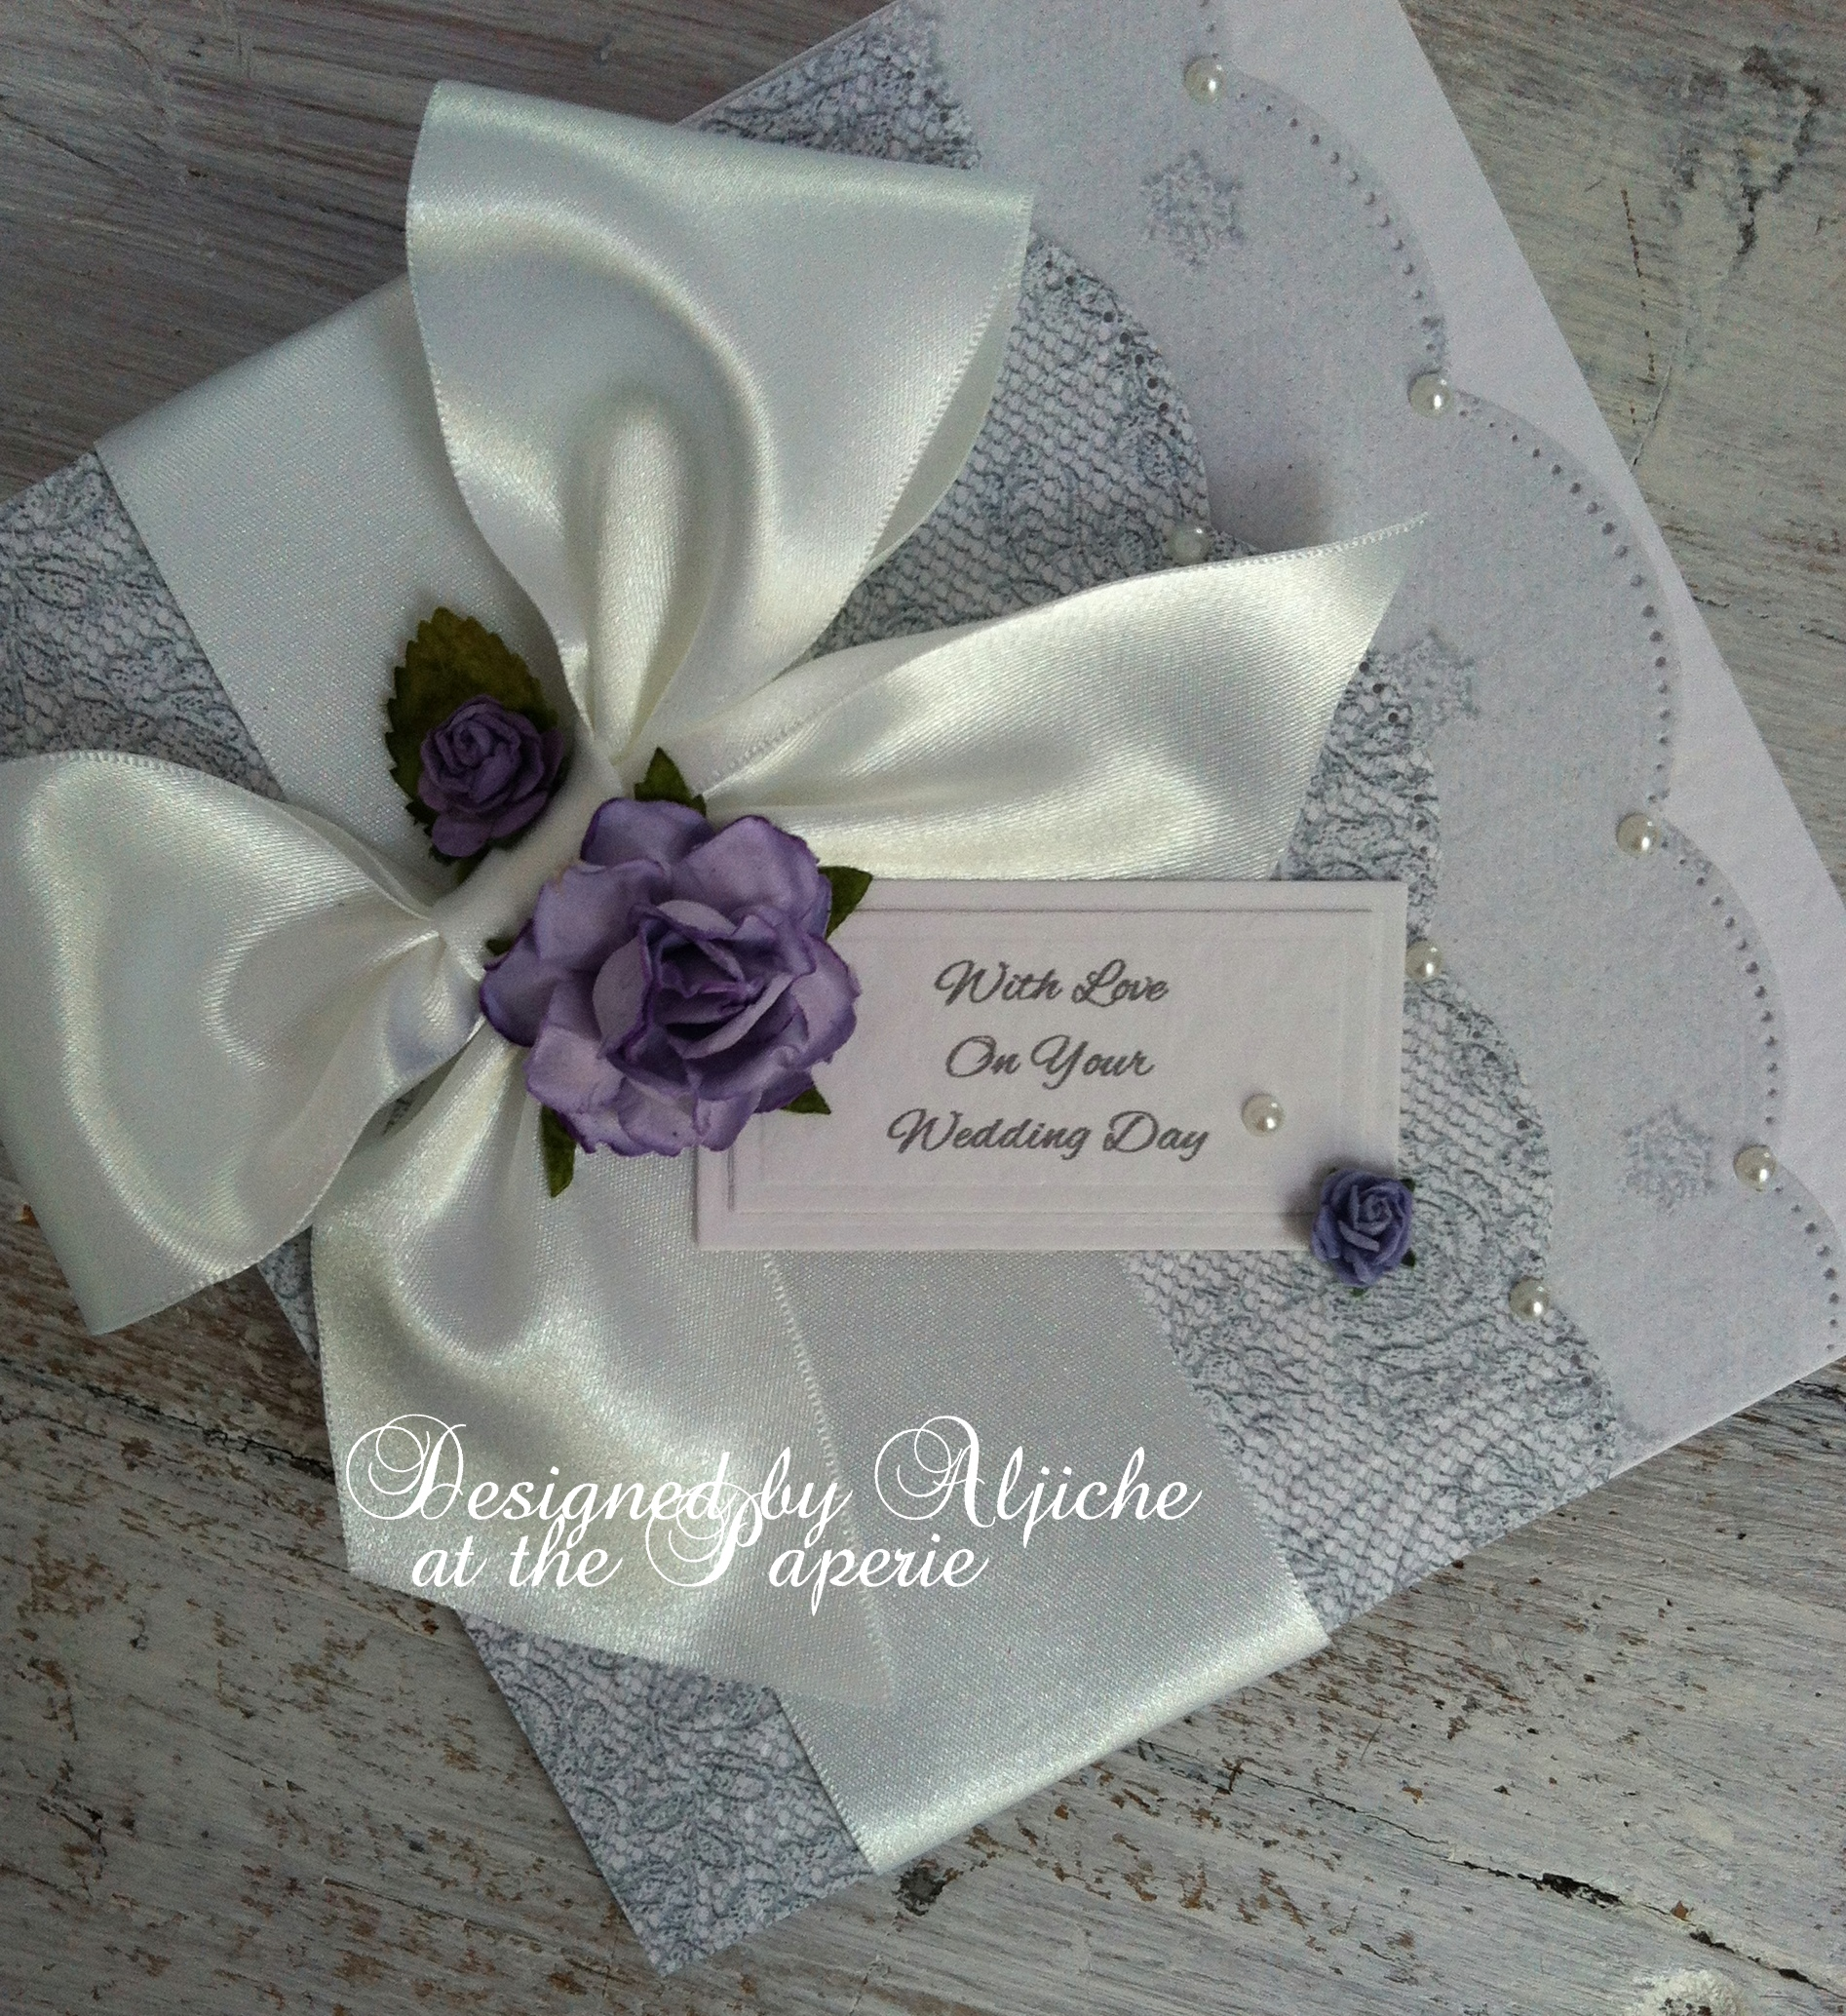 The Lavender Blue Paperie